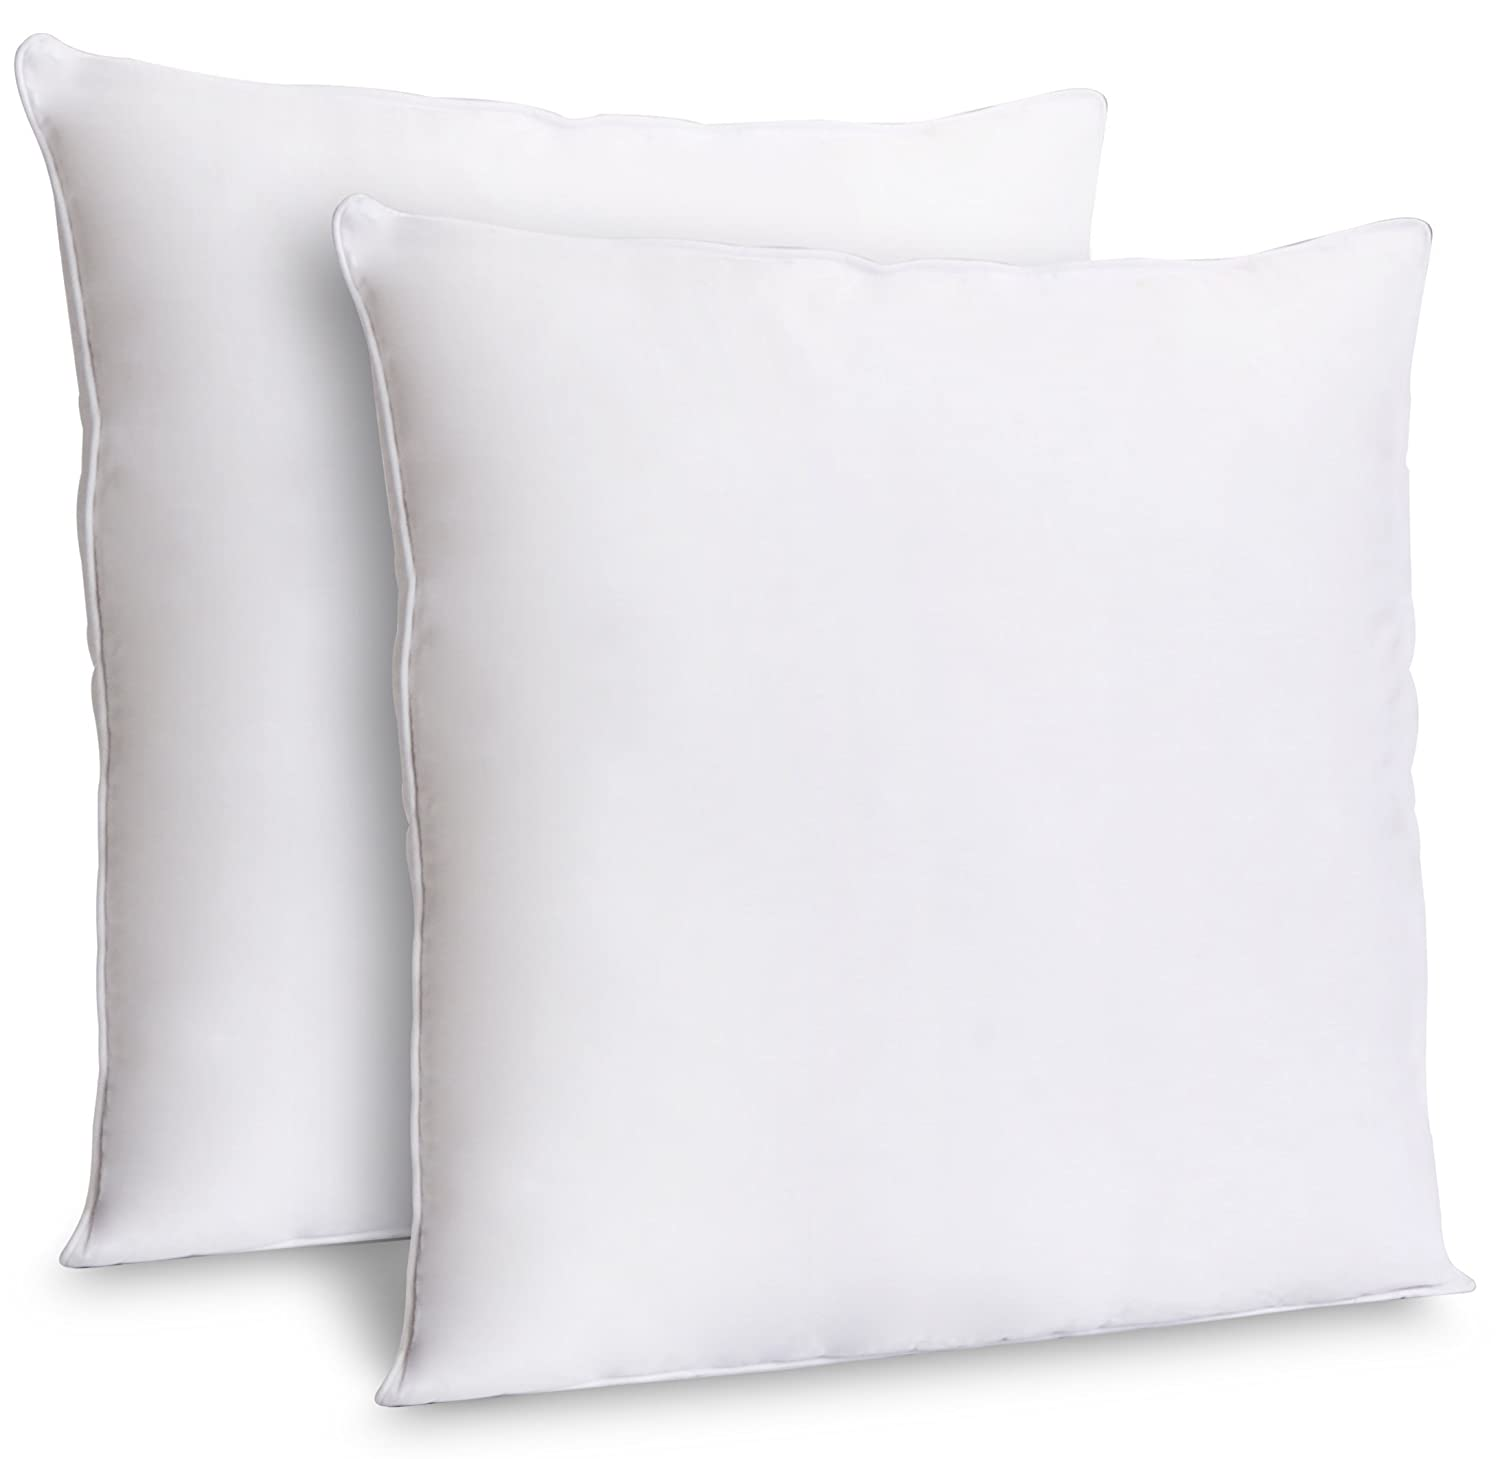 Zoyer Decorative Throw Pillow Inserts (2 Pack, White) - Square Indoor Sofa Pillows - Premium Poly Cotton Cover (16x16 Inch) ZB0123